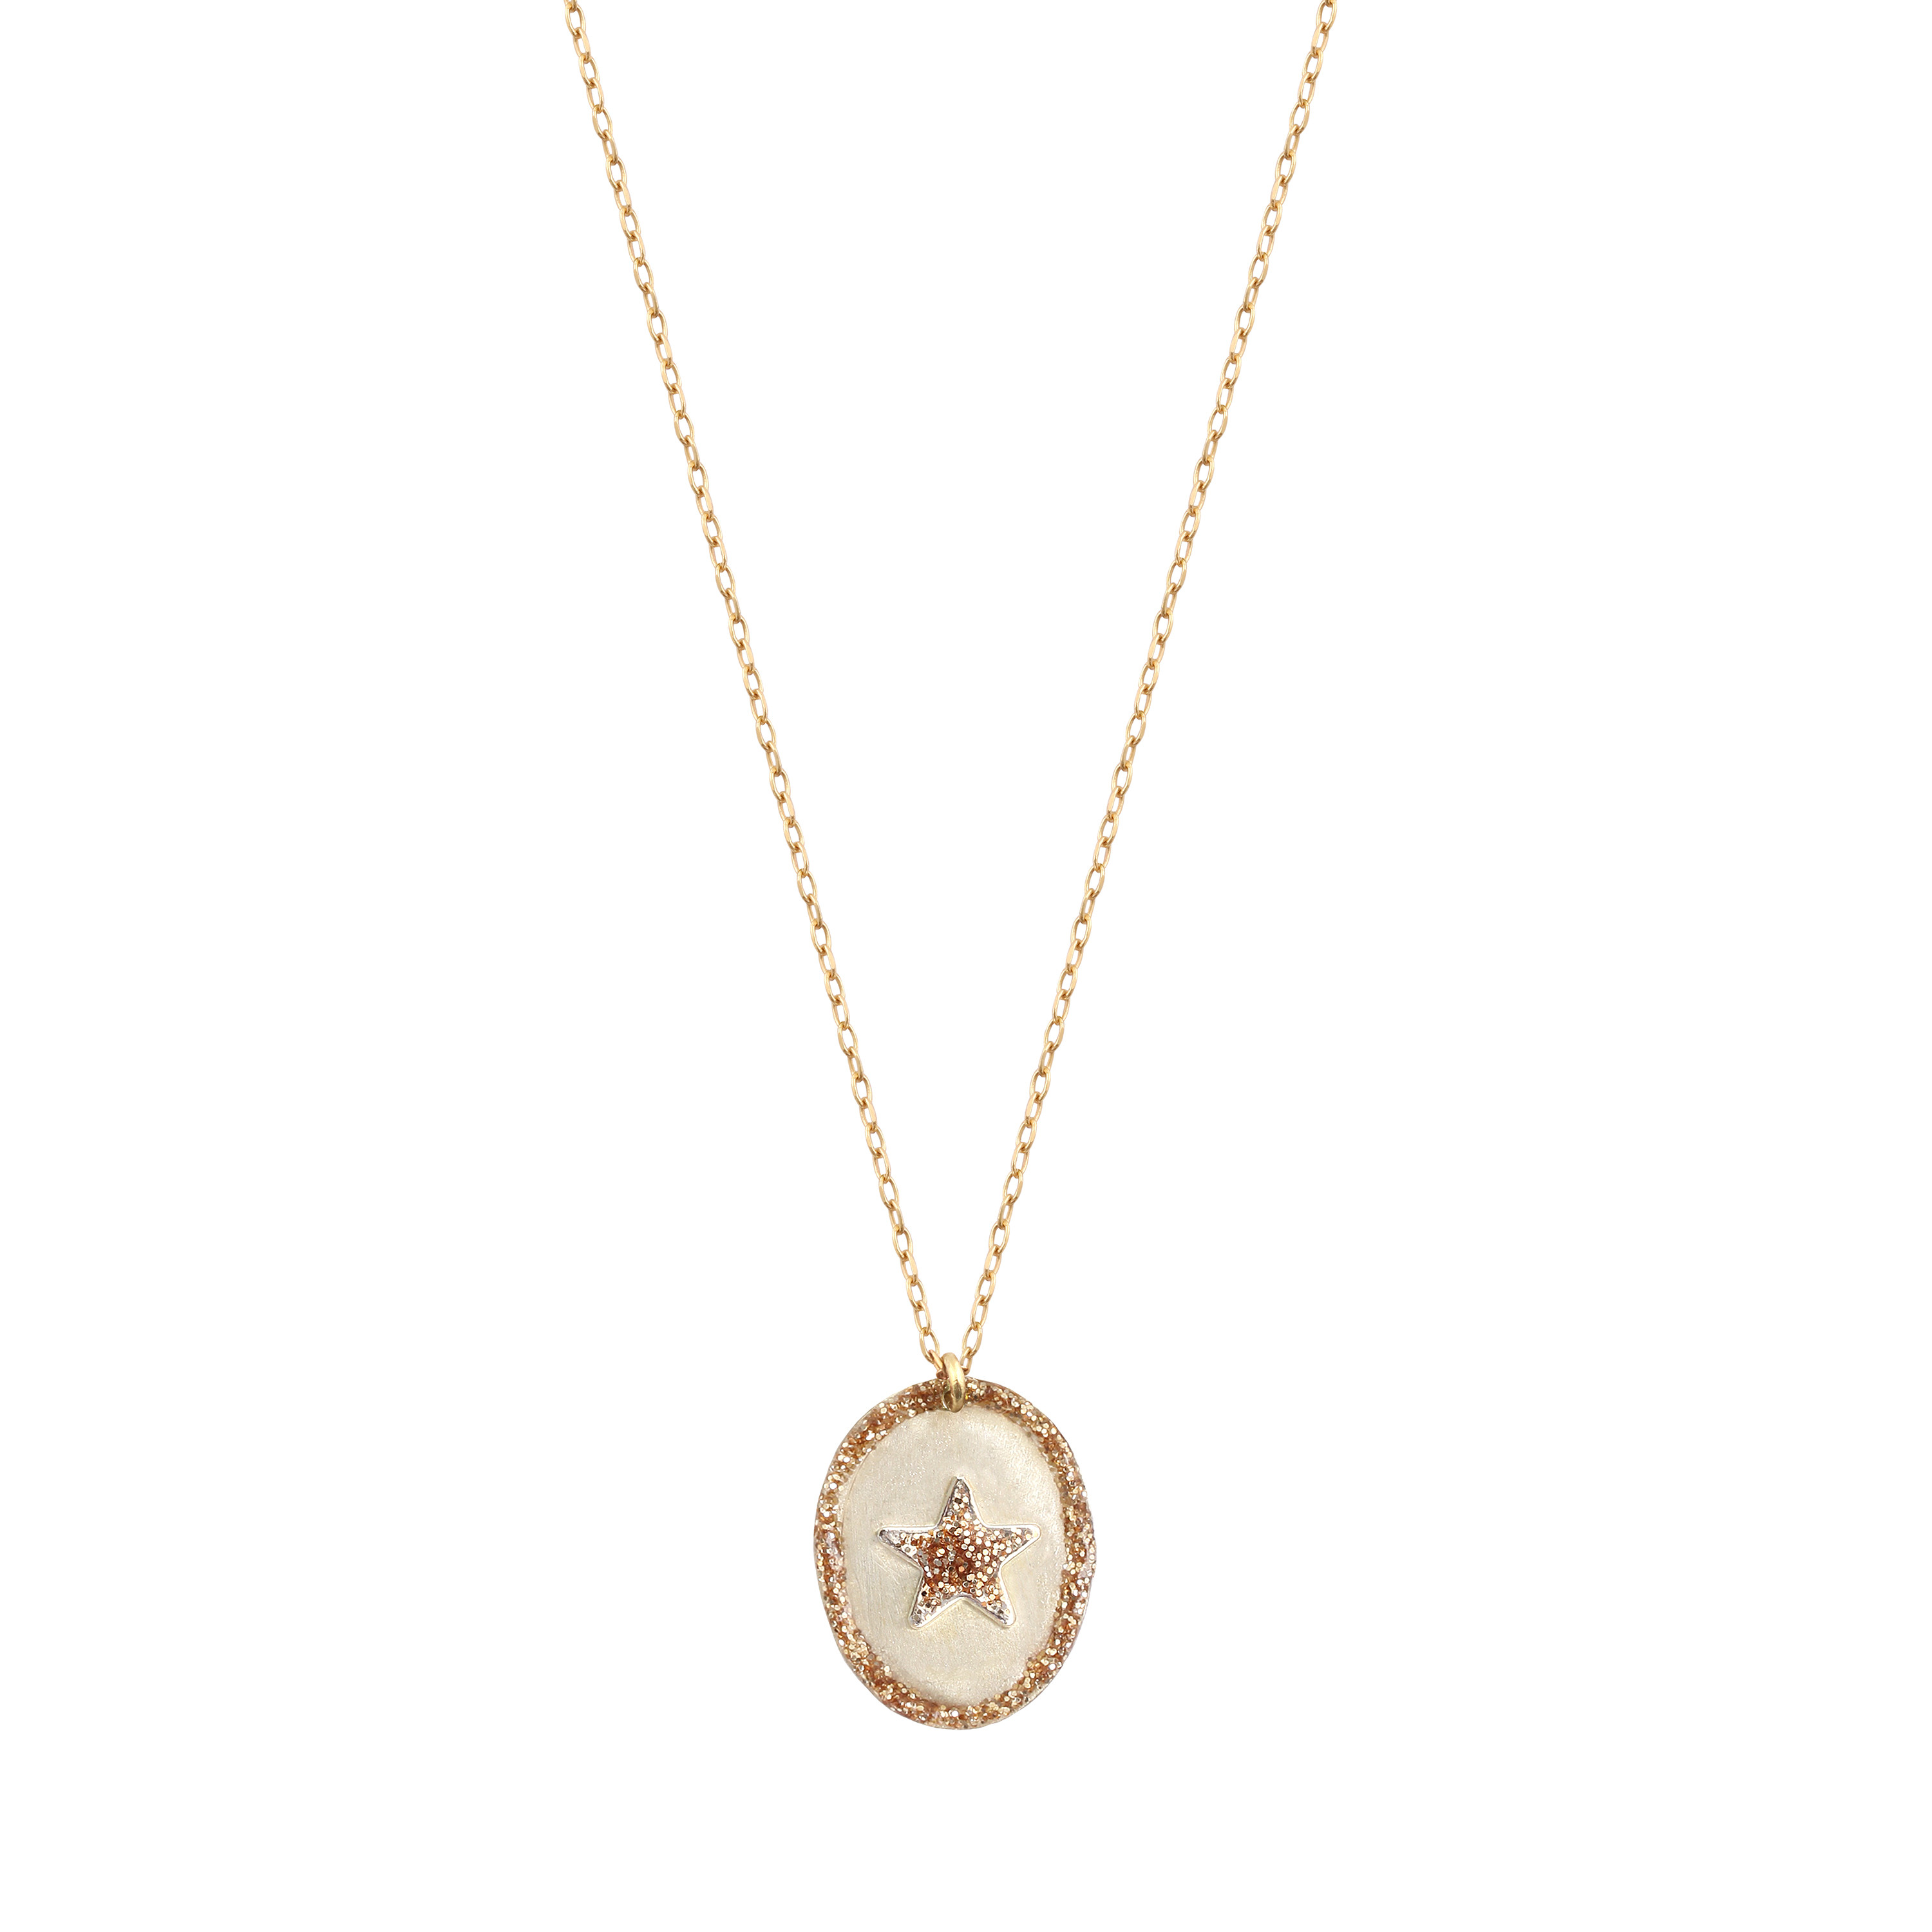 LSONGE - Collier Ovale Star Argent Blanc